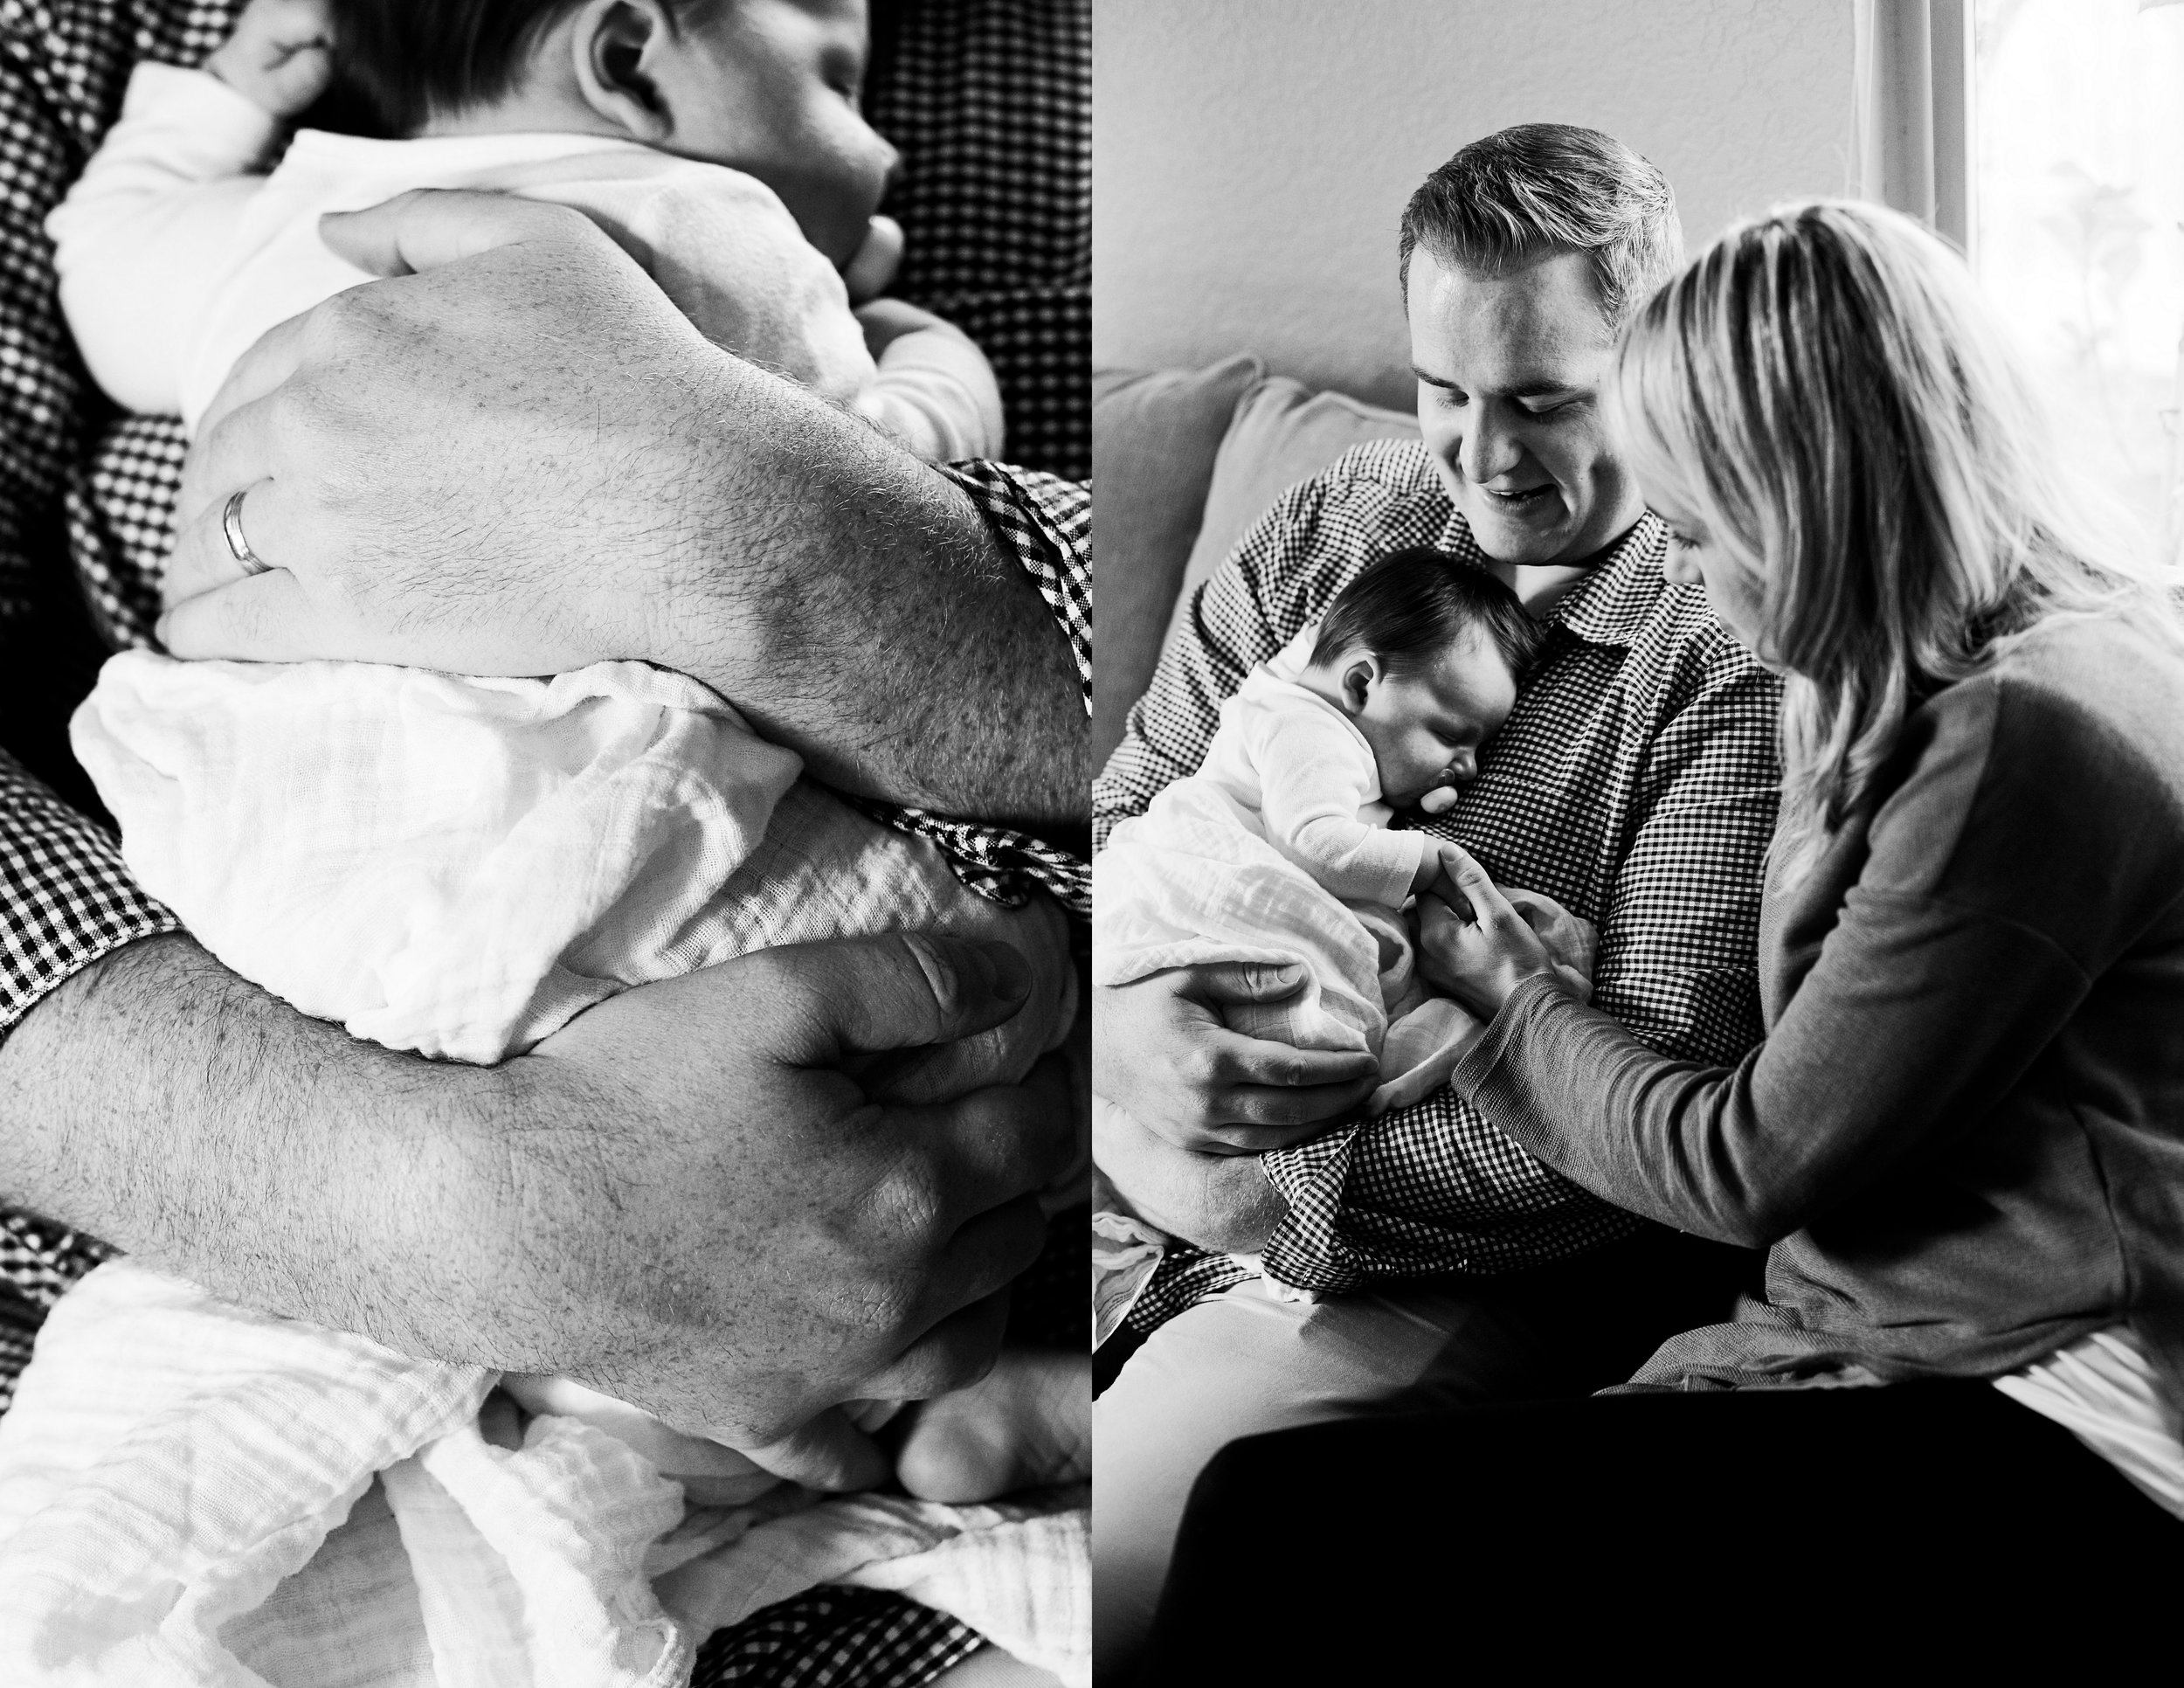 Family of Four, Newborn Baby, Amy Wright Photography, Roseville Family Photographer